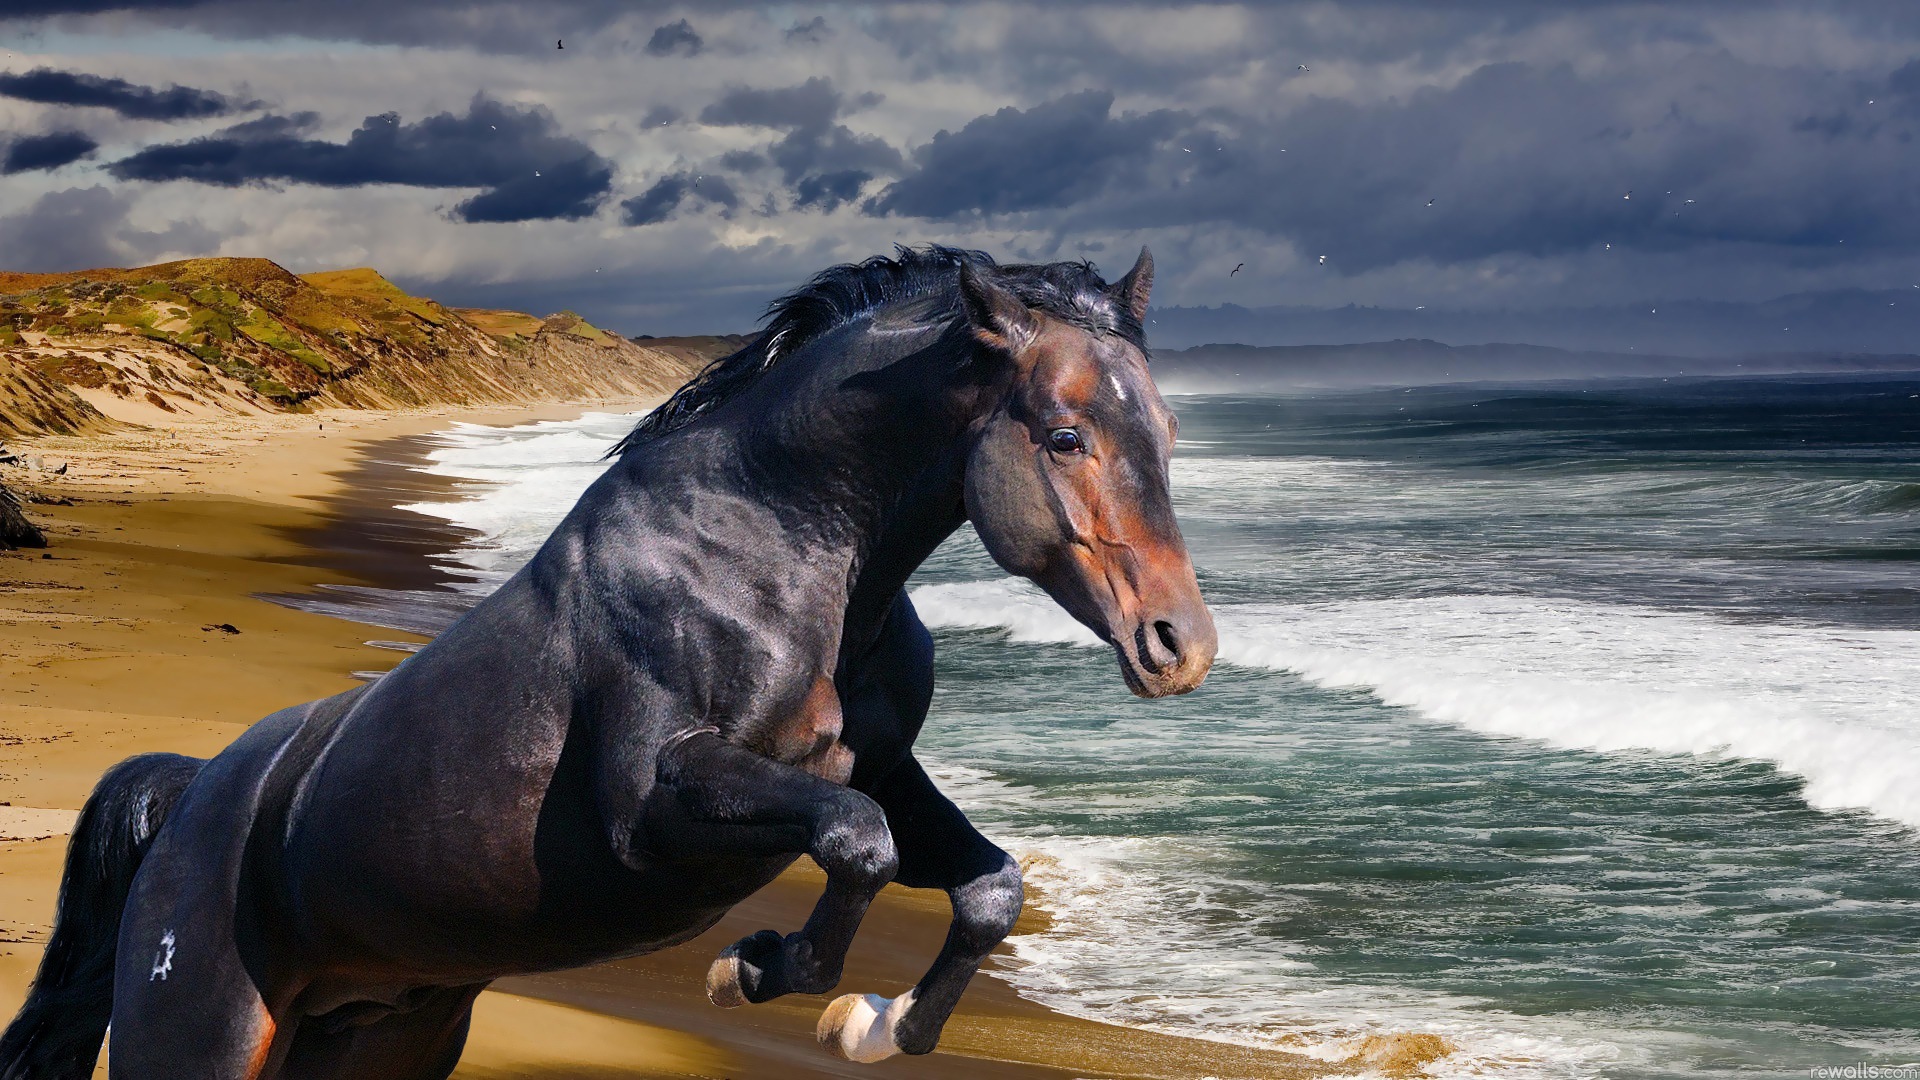 Animal - Horse  Ocean Beach Sea Wave Wallpaper